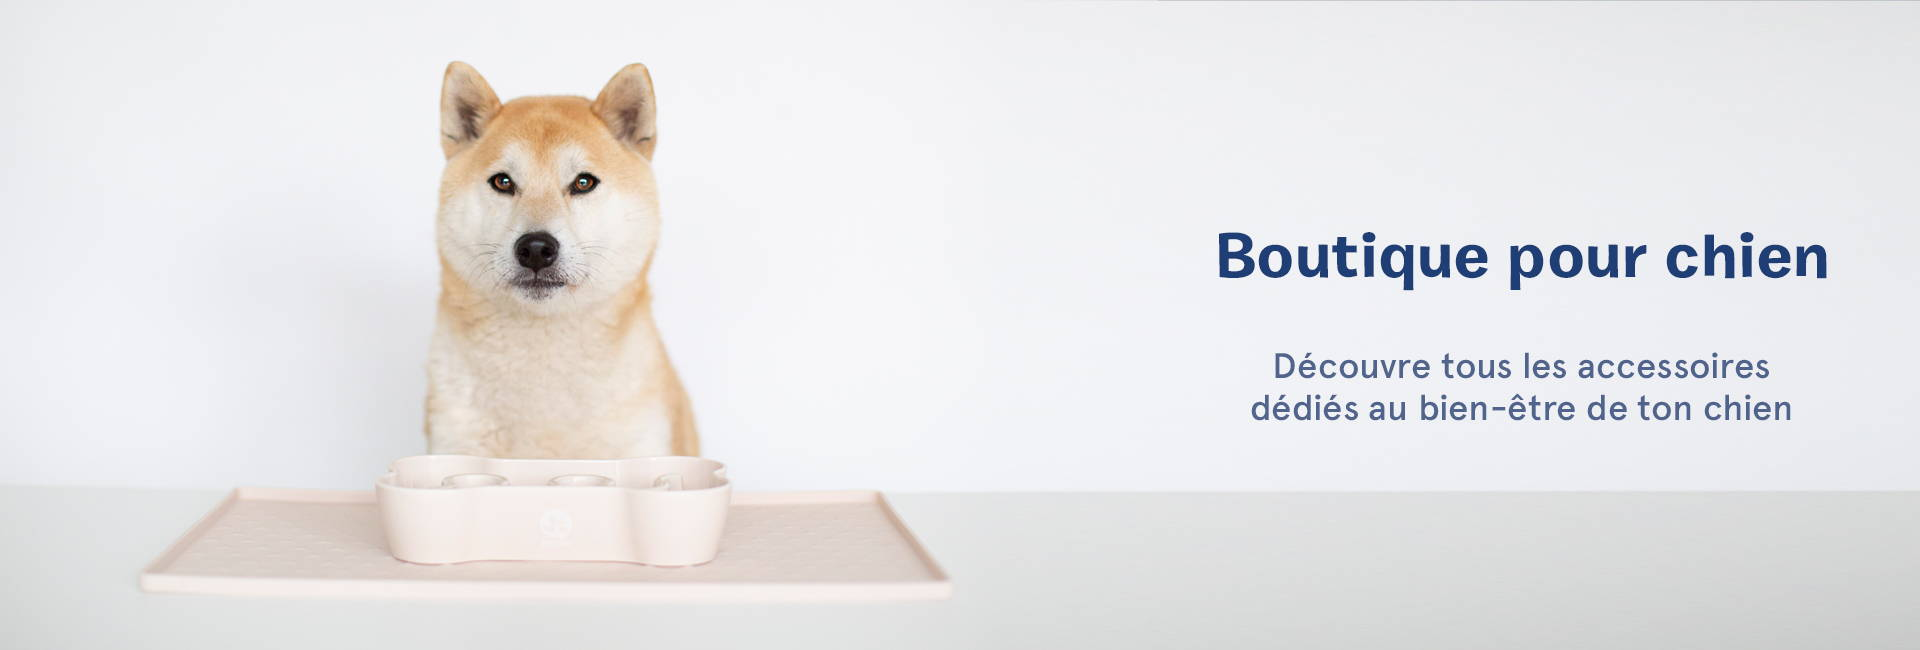 inooko-gamelle-design-boutique-chien-francais